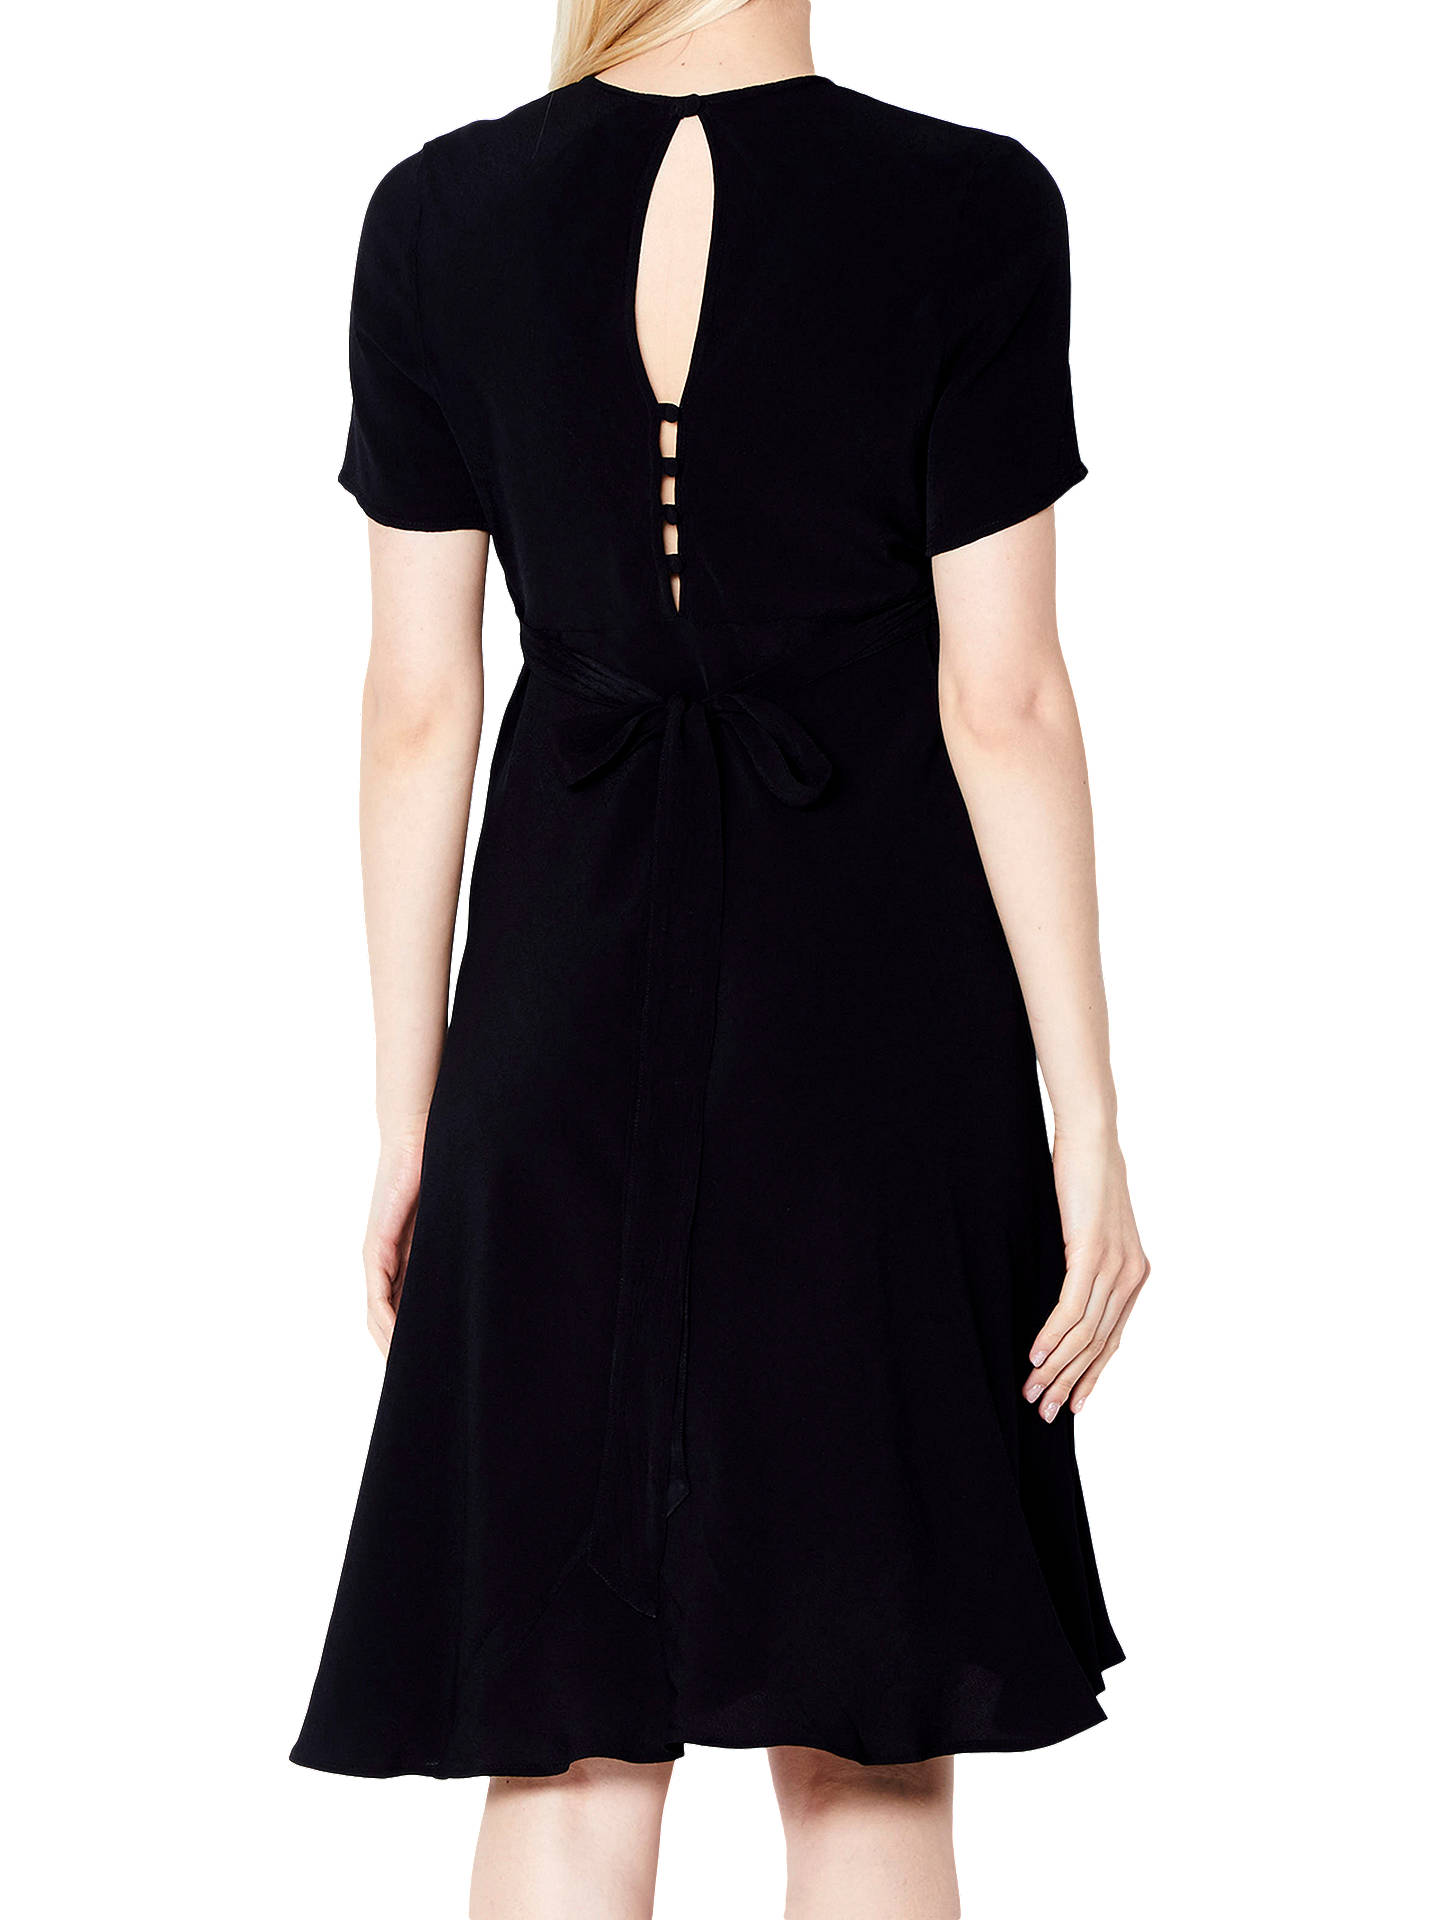 BuyGhost Roxy Crepe Dress, Black, XS Online at johnlewis.com